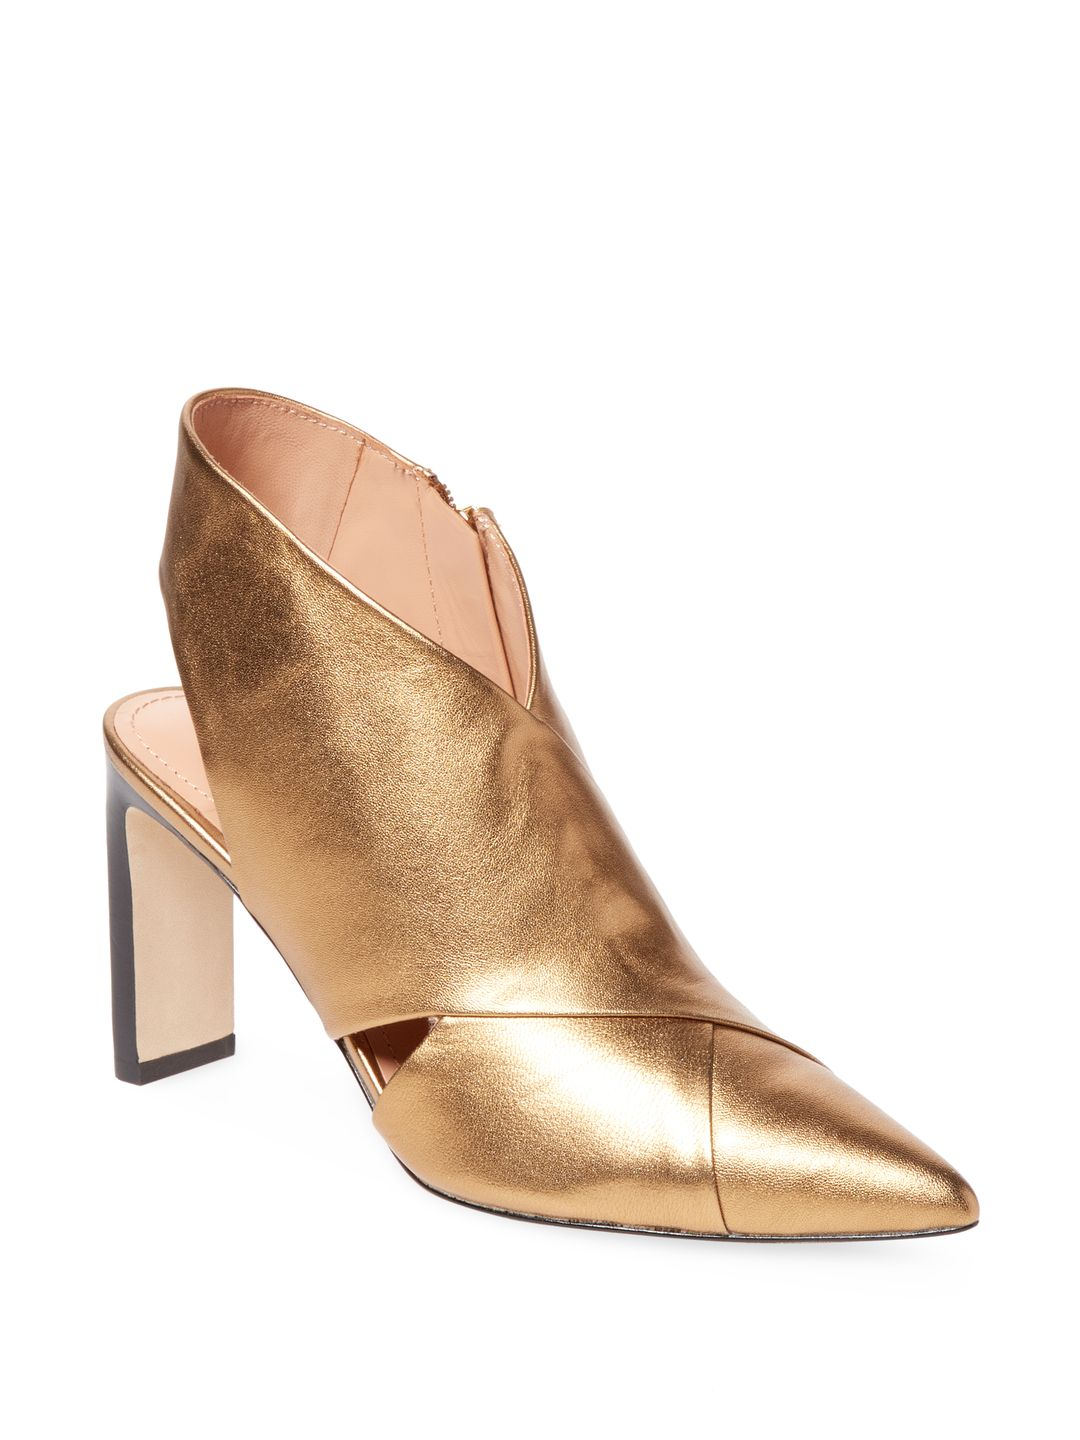 Particular Belle by Sigerson Morrison Woman Metallic Leather Pumps Size 7 Fake Cheap Online Sale Footlocker Pictures View Online 22mV9rO5N